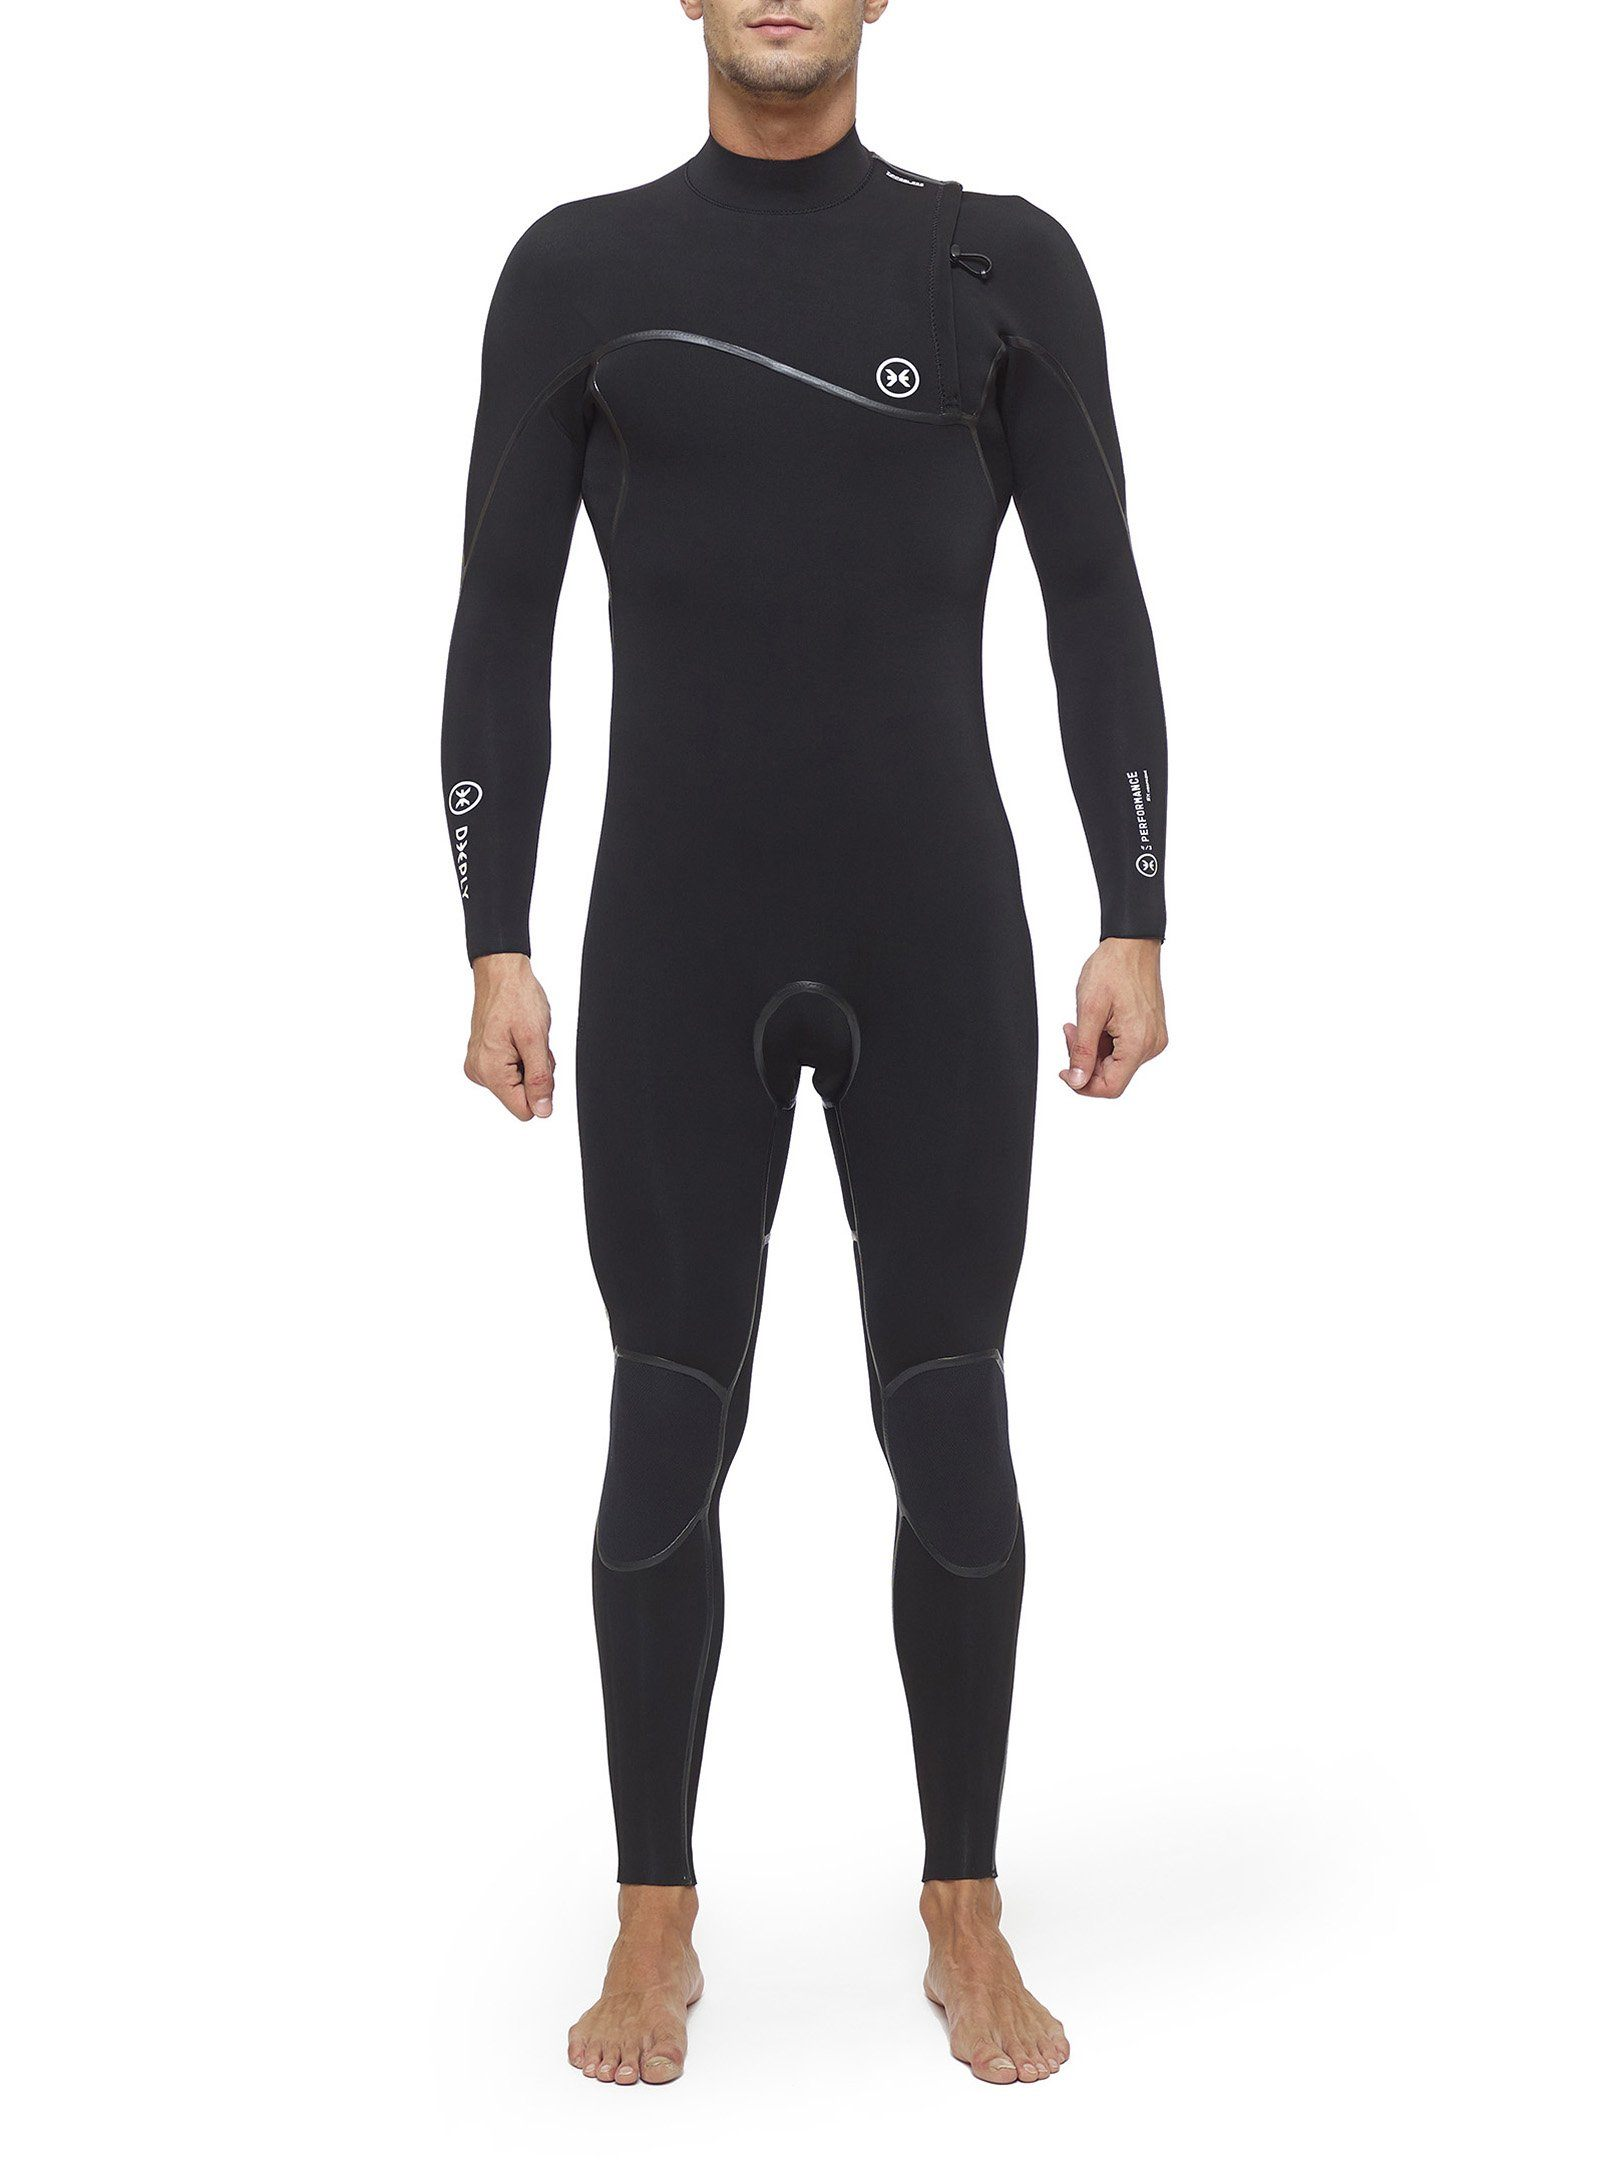 Deeply Wetsuit Performance 4/3 Zipperless Thermo